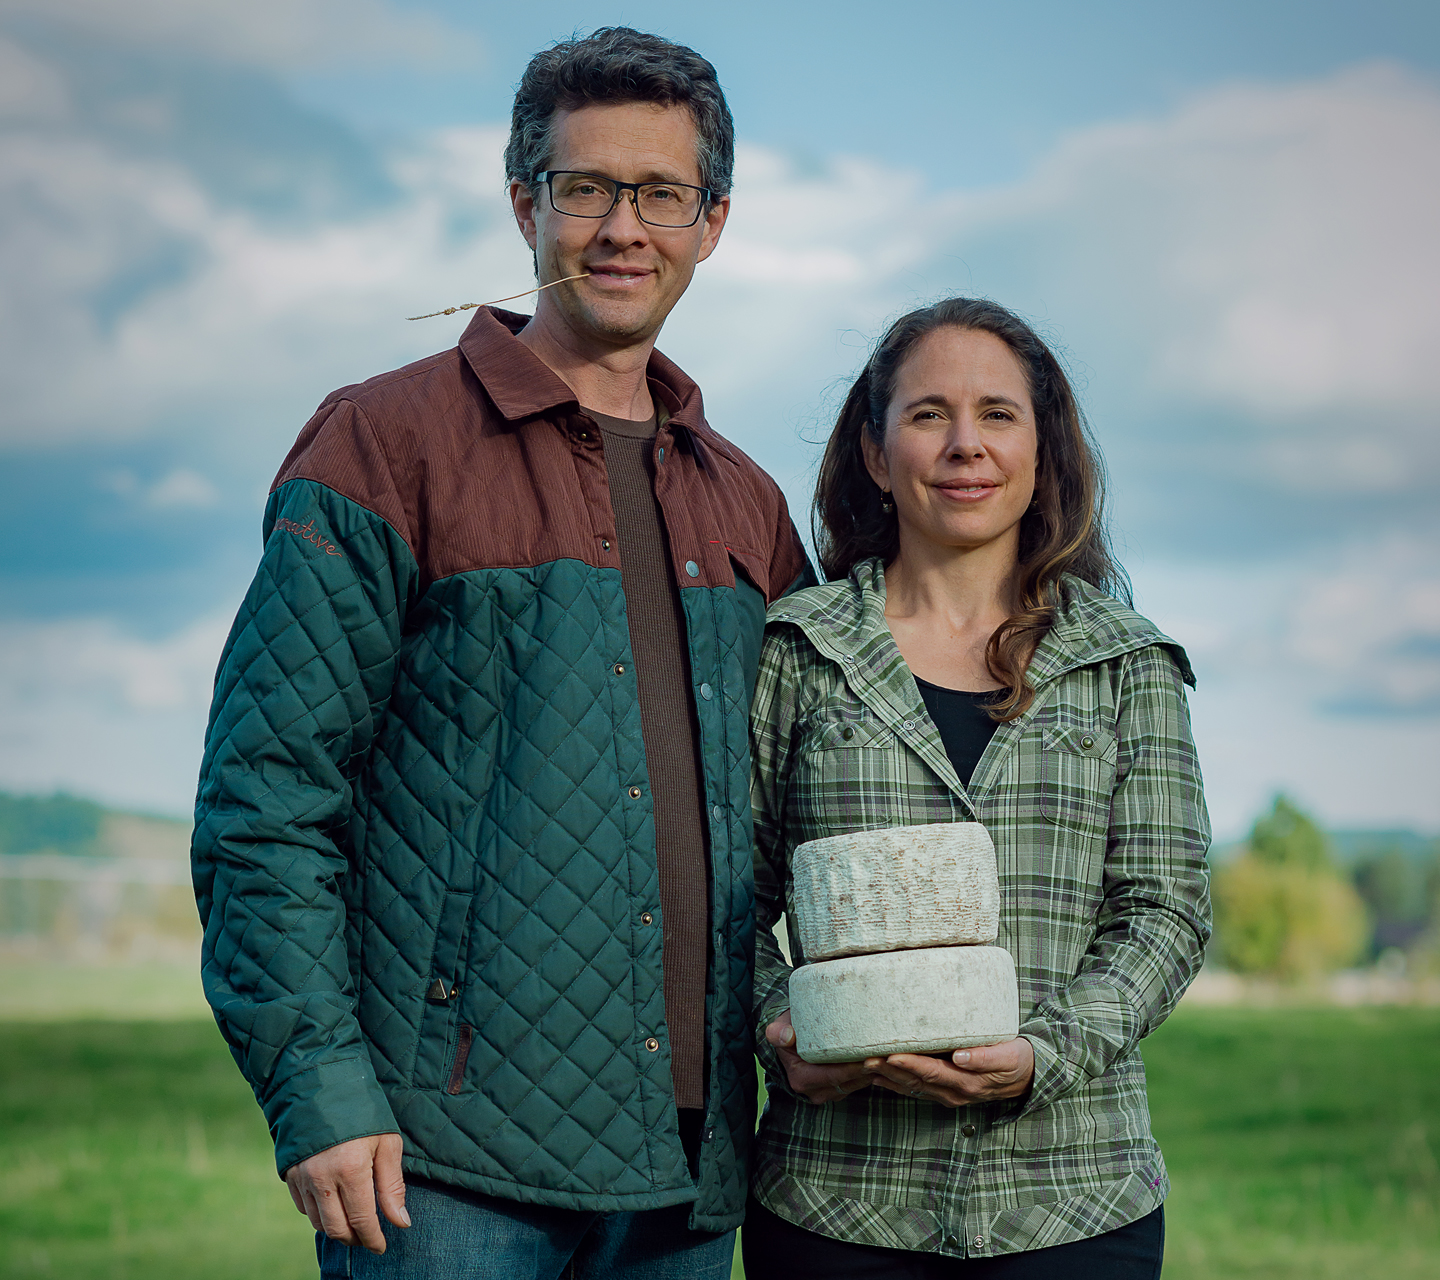 The Cheesemakers | John and Marci